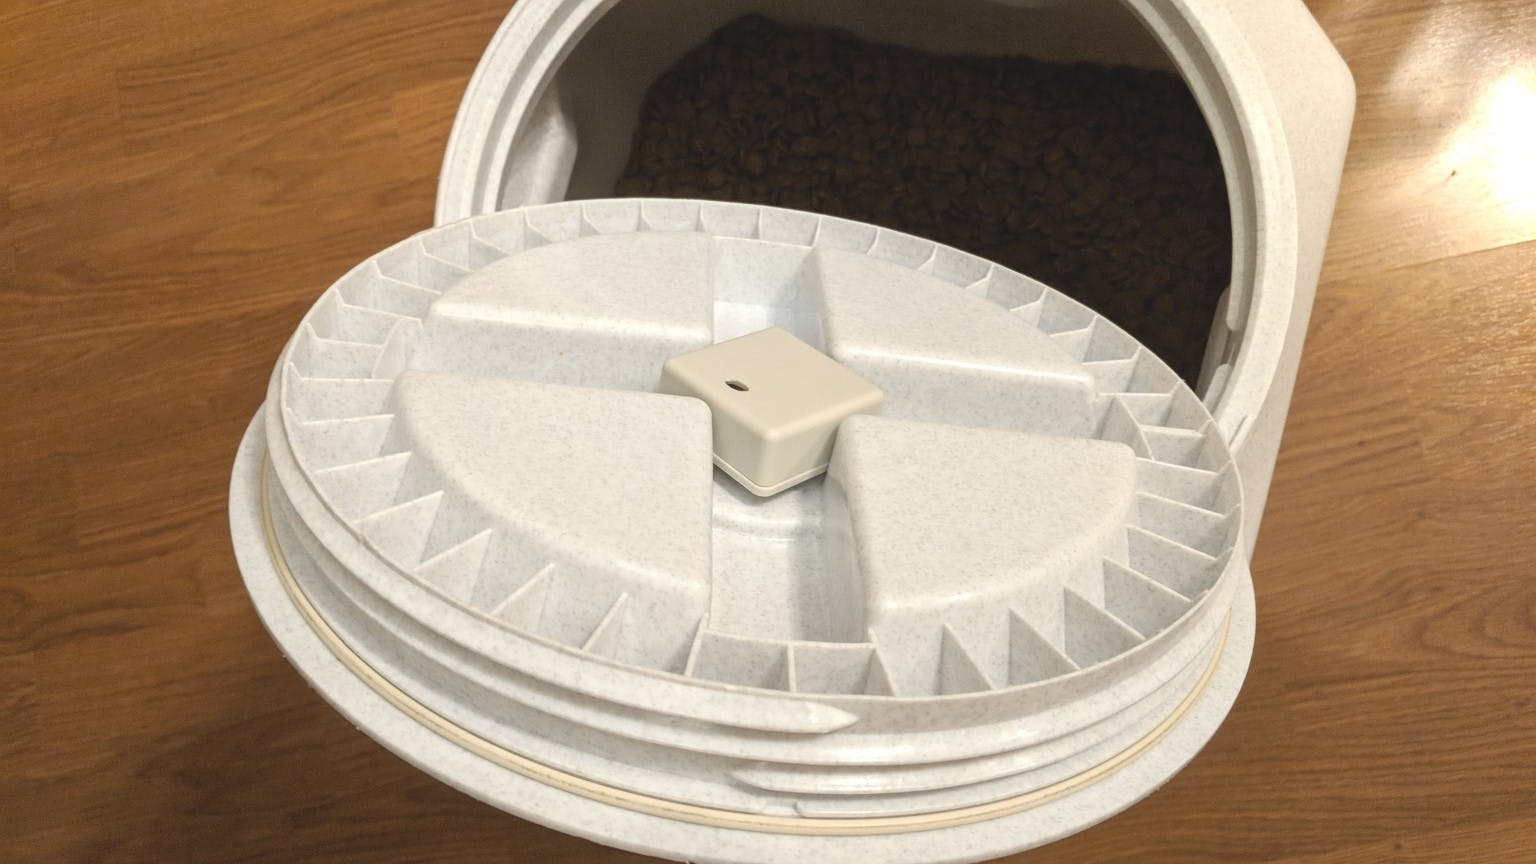 Installed in dog food container